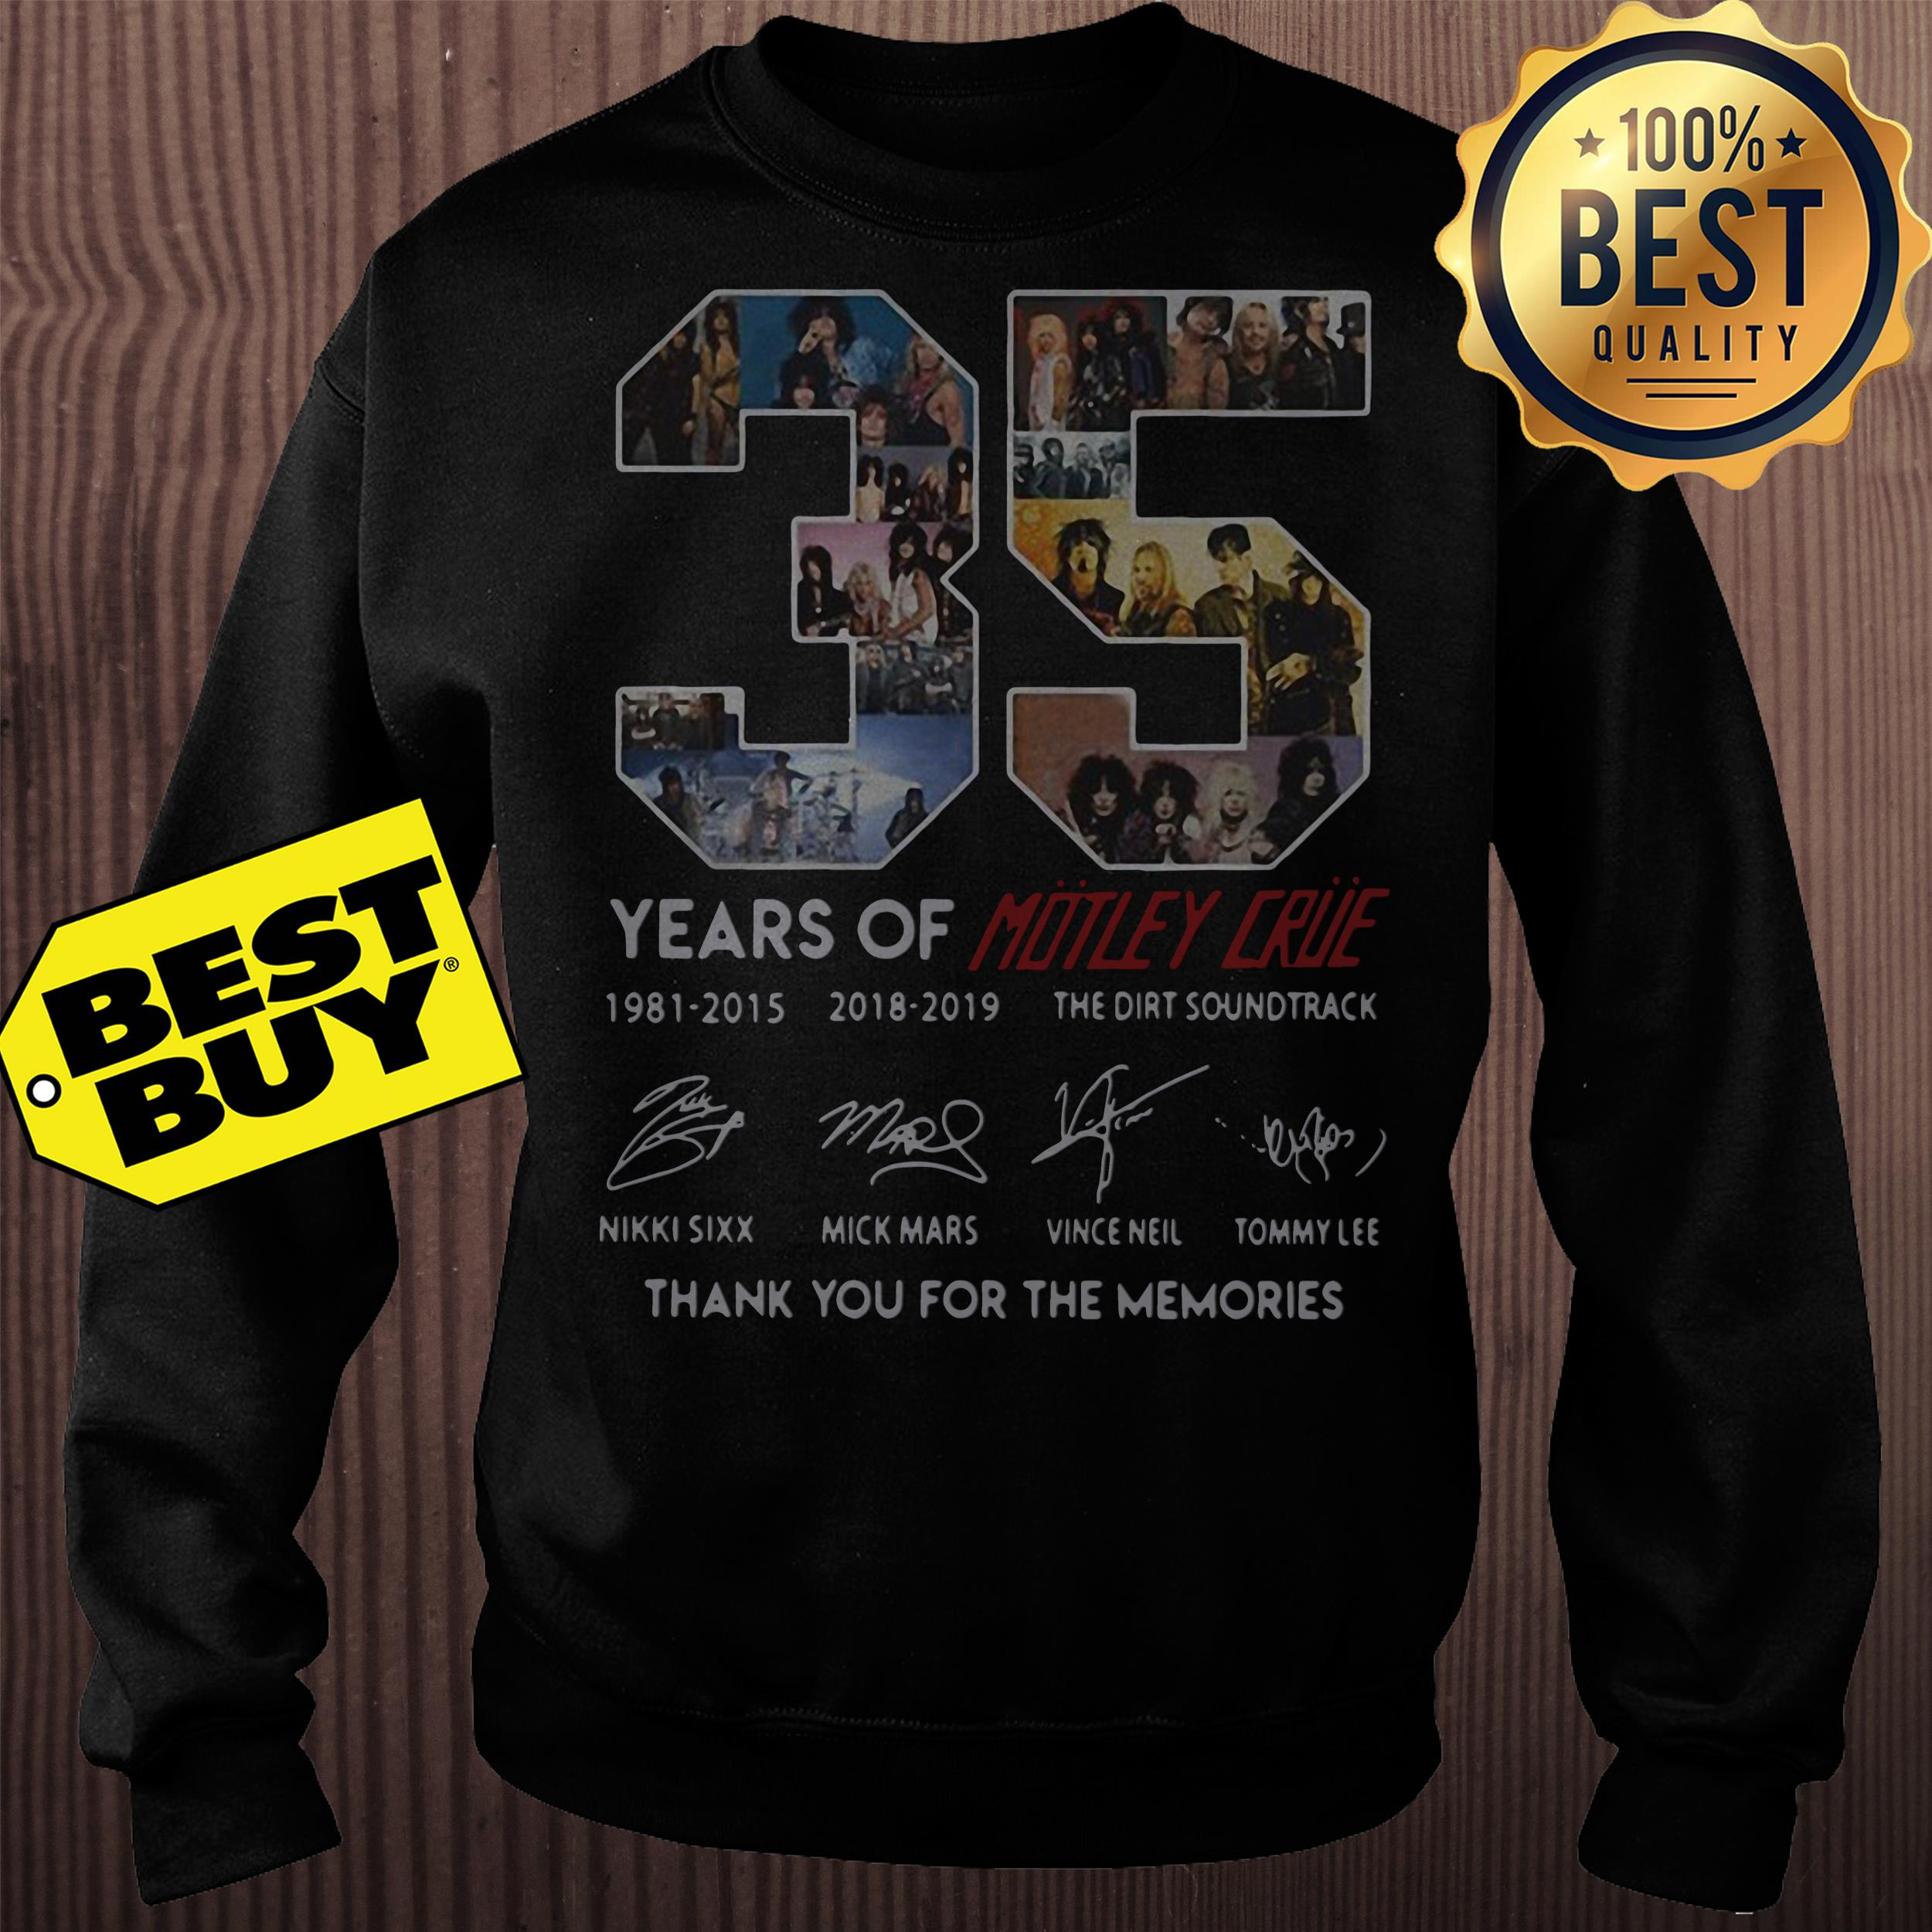 35 years of Motley Crue Thank you for the memories sweatshirt